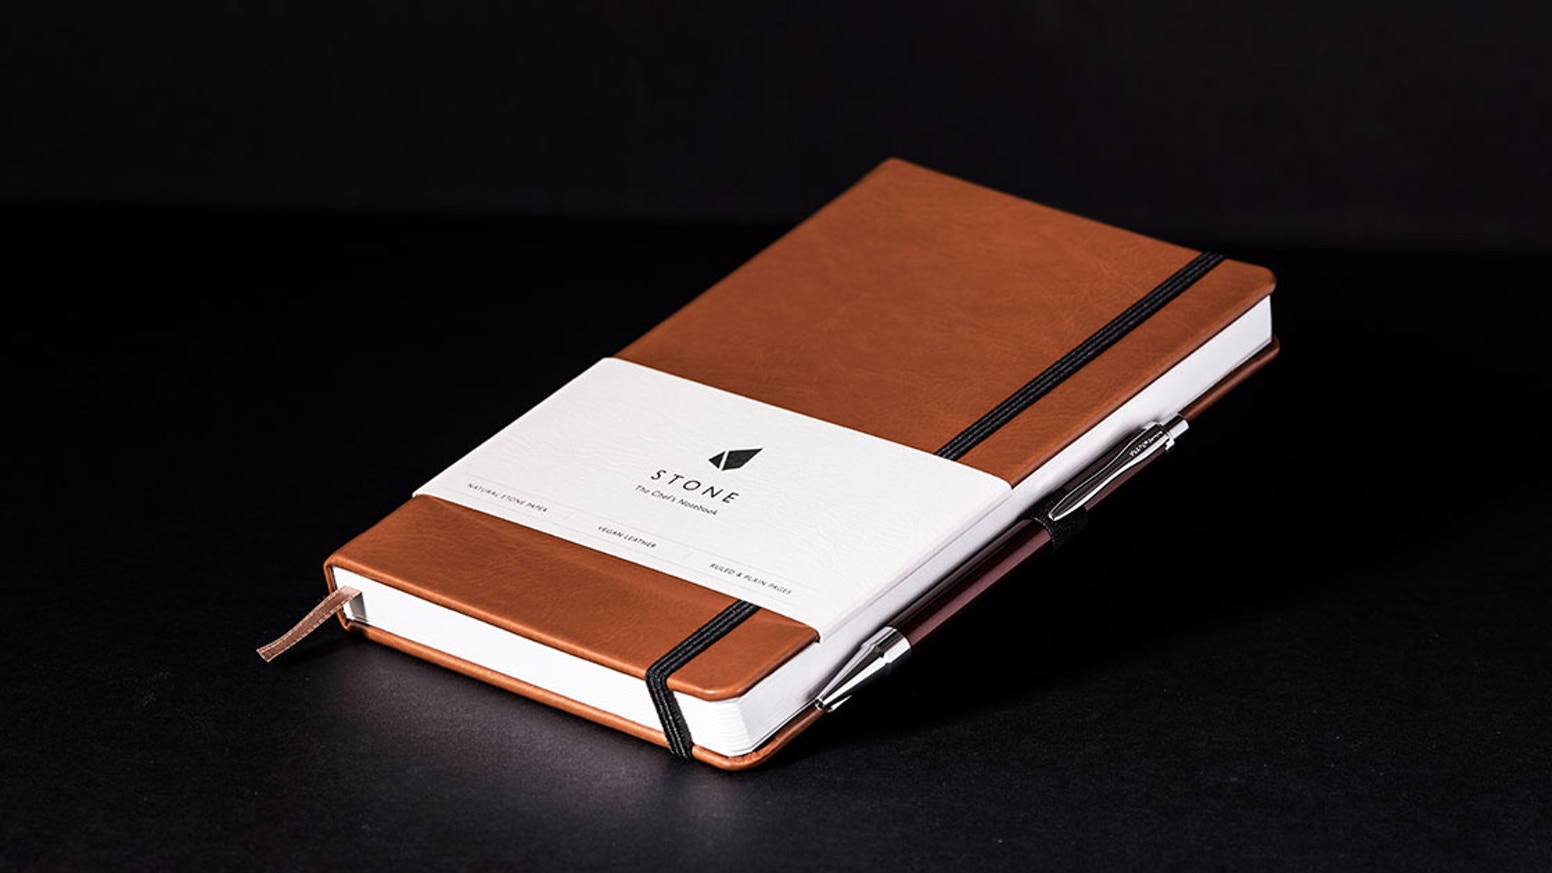 Designed by chefs, for chefs, the Stone notebook is made for the rigours and creativity of the professional kitchen